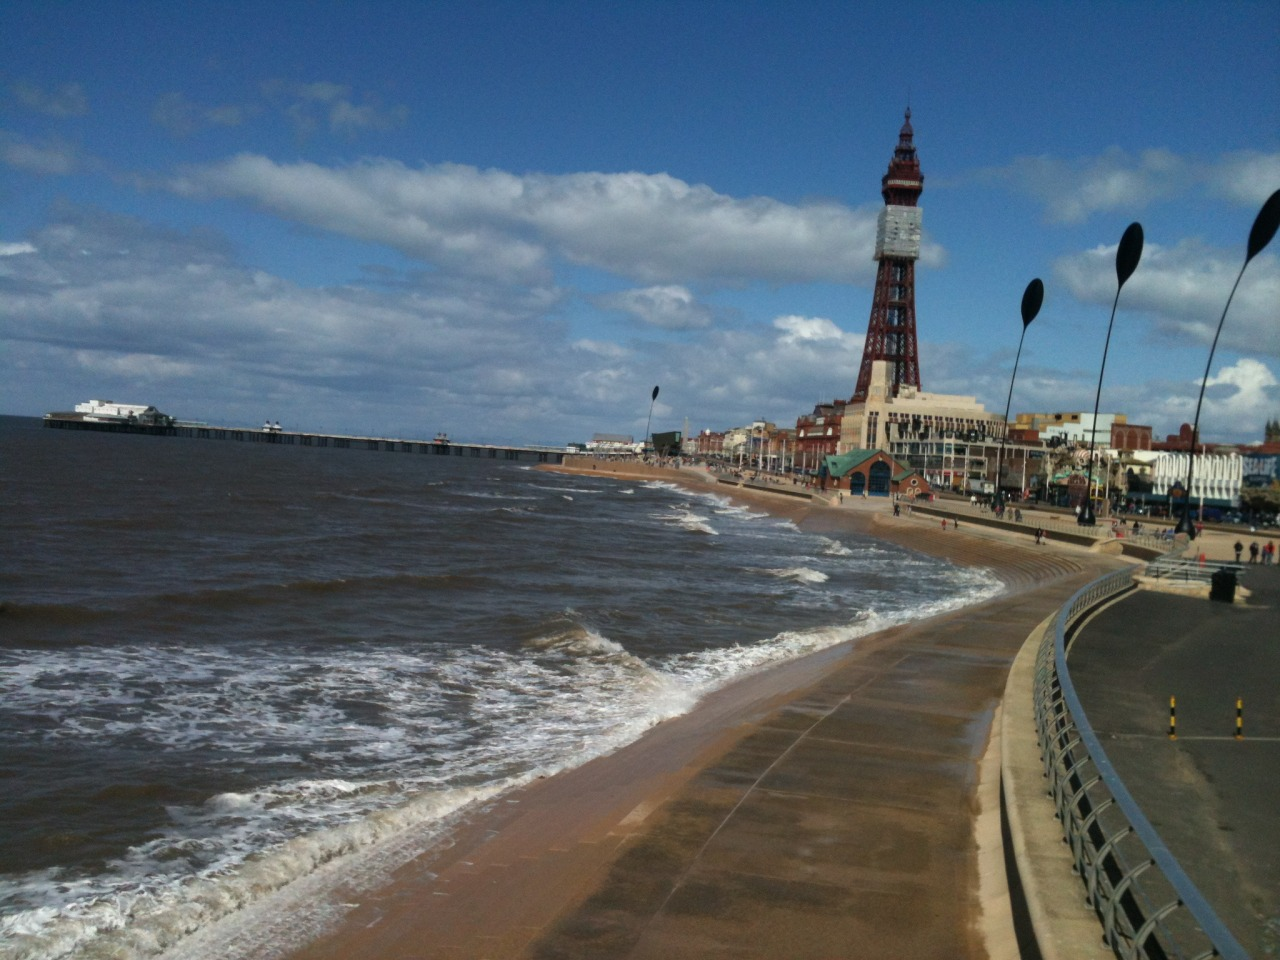 BlackpoolApril 27, 2013